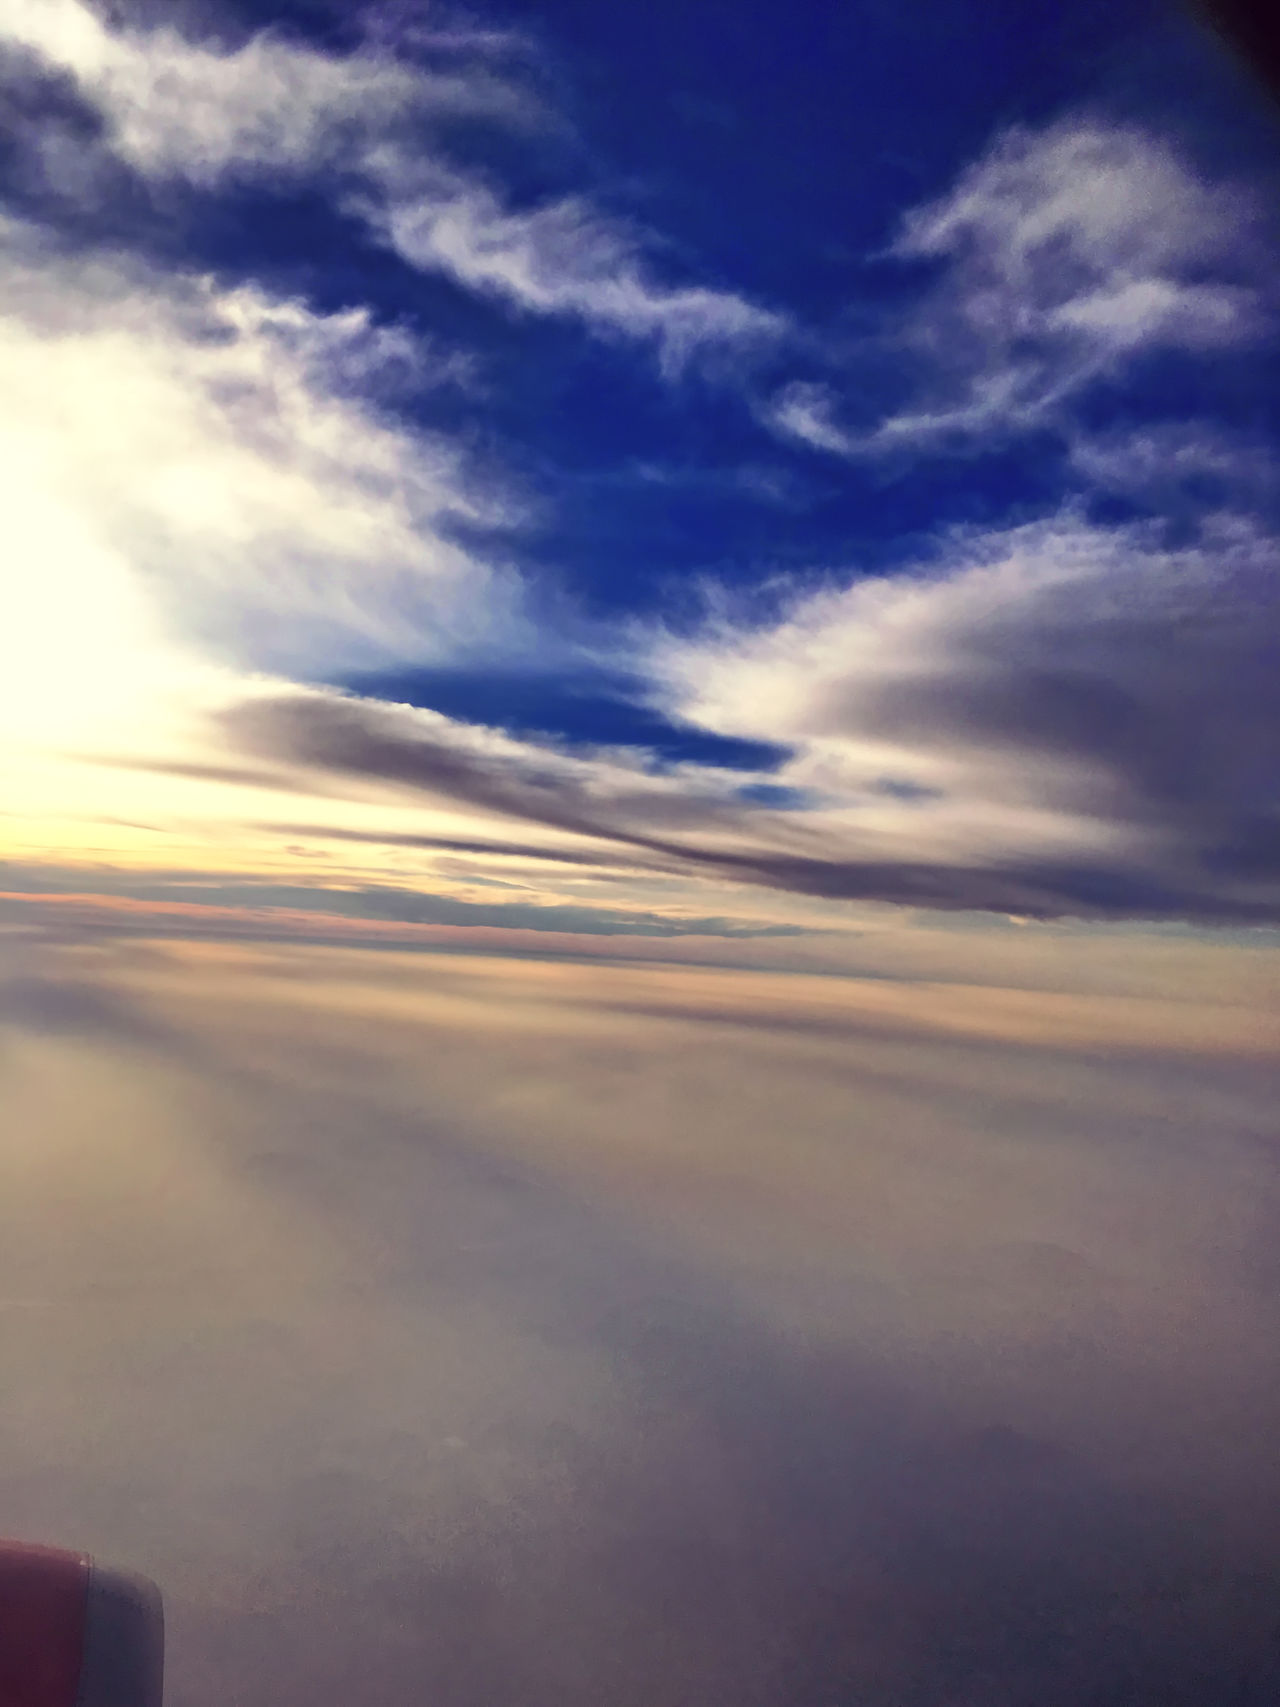 Aerial Shot Aerial View Beauty In Nature Cloud Cloud - Sky Cloud And Sky Clouds Clouds And Sky Cloudscape Cloudy Day From An Airplane Window Nature No People Outdoors Scenics Sky Sky And Clouds Sky Collection Sky_collection Sunset Sunset_collection Tranquil Scene Tranquility Water